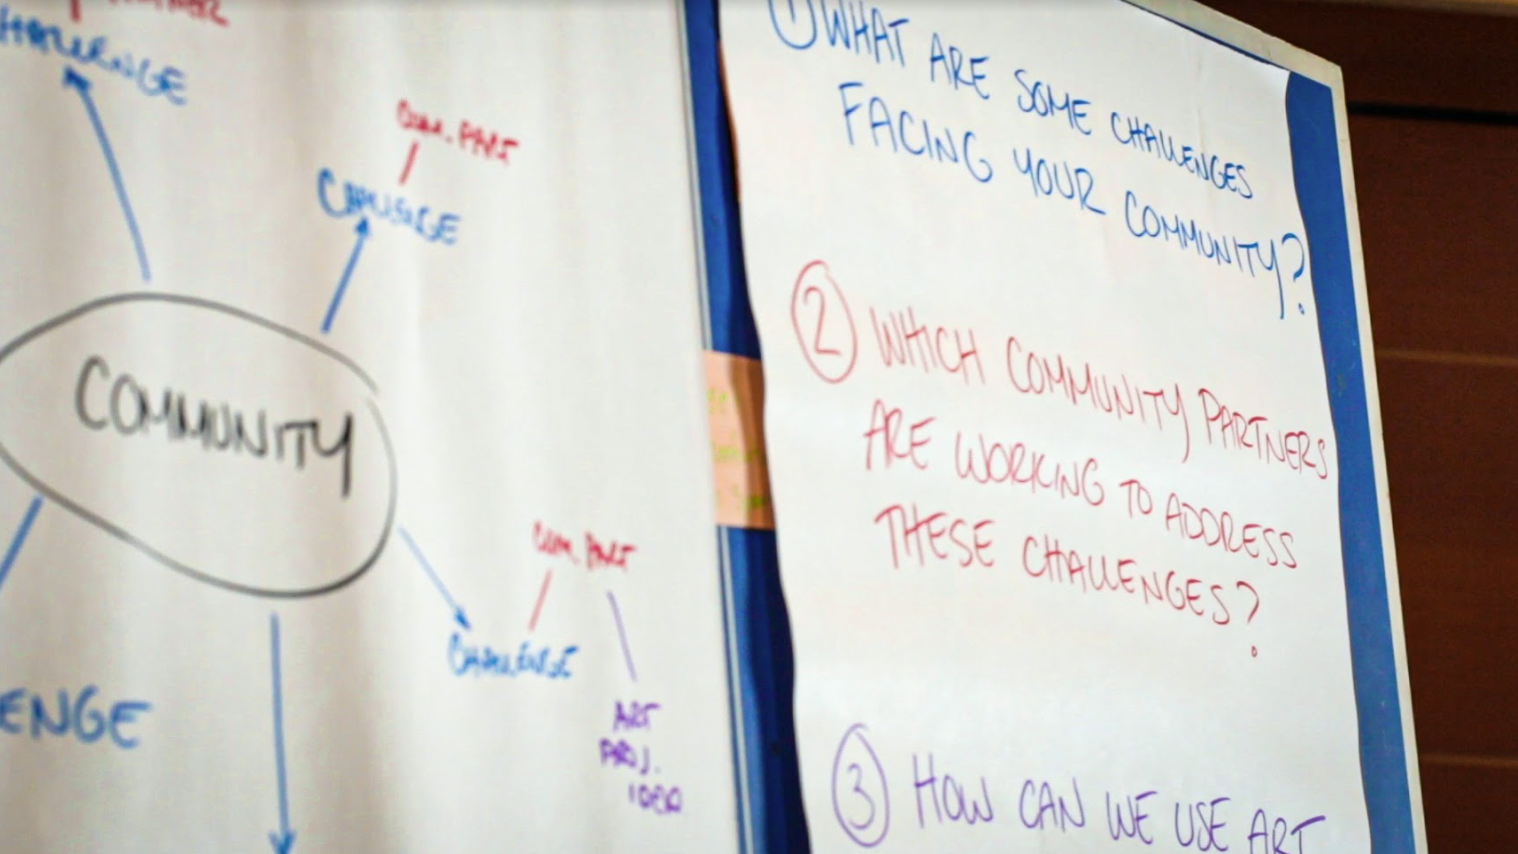 Community ideation whiteboard: 1. What challenges exist in your community. 2. What community resources are addressing these challenges? 3. How can we use art?